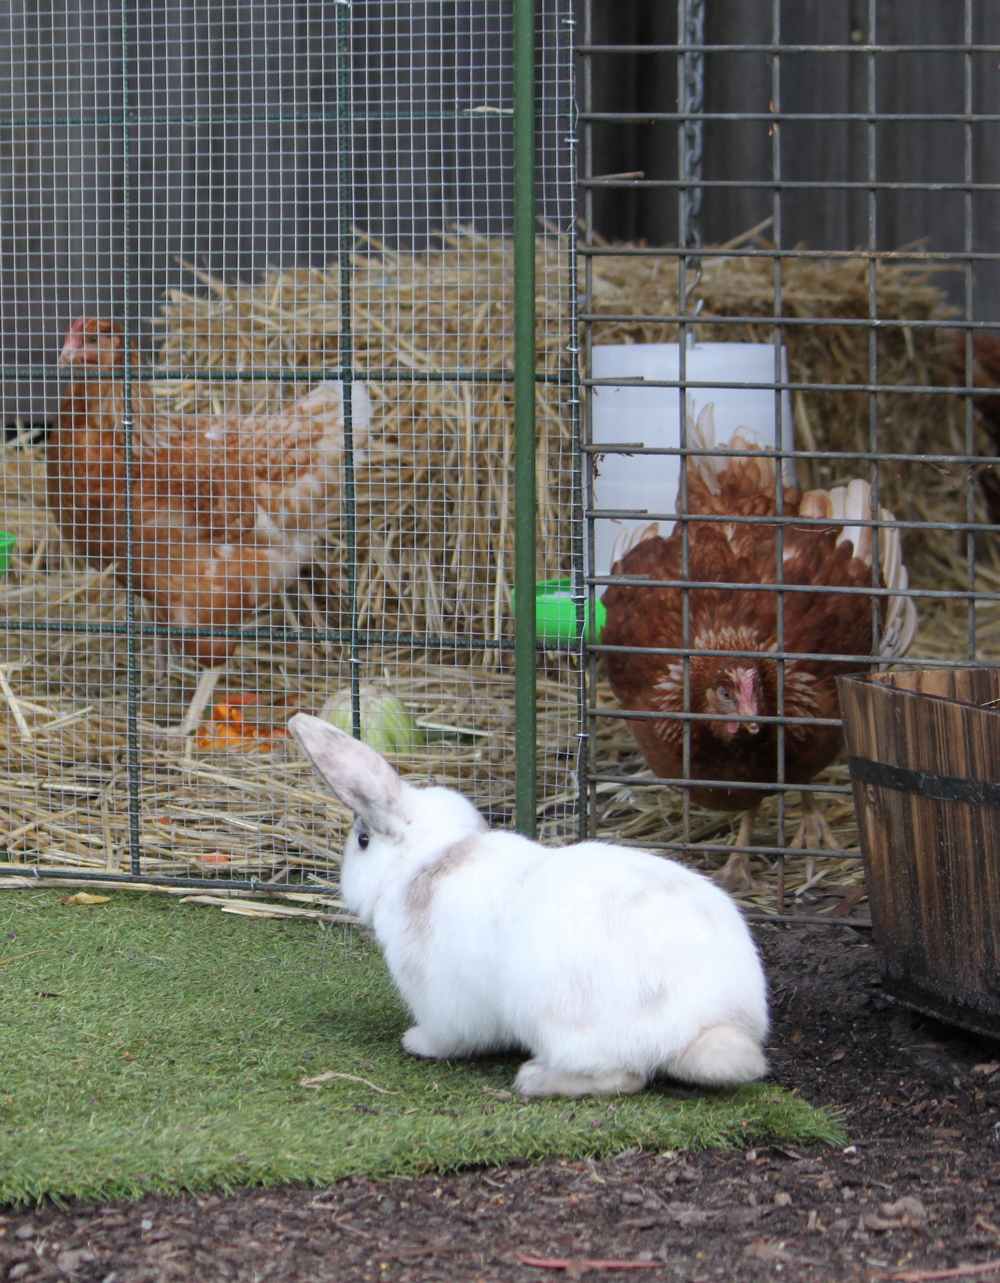 Our bunny meets the chooks for the first time.